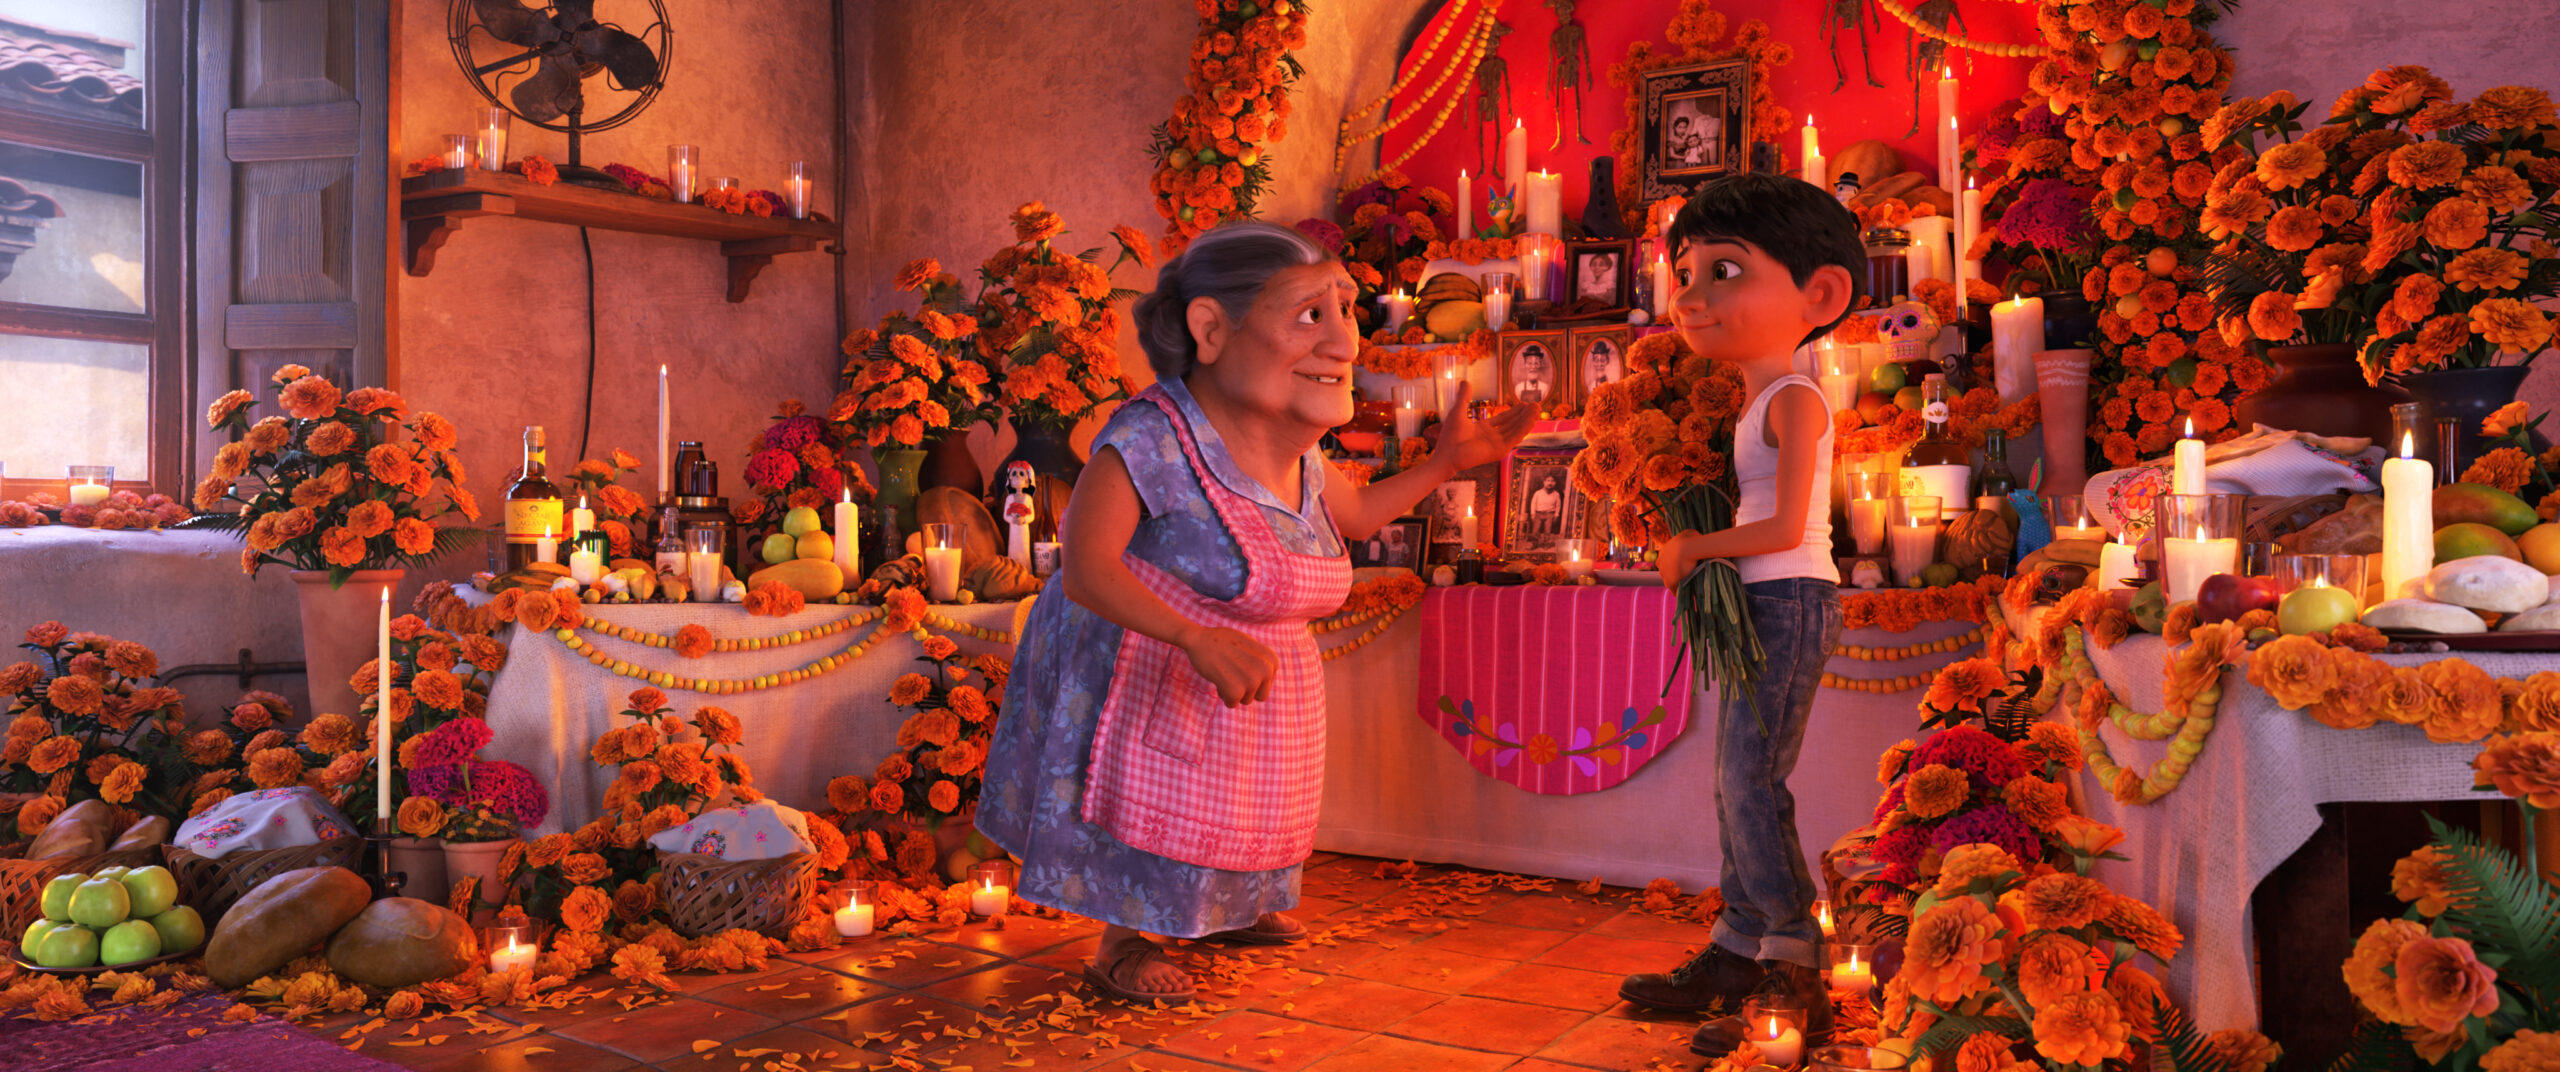 The Disney Pixar movie Coco is rich with lessons about Mexican culture.